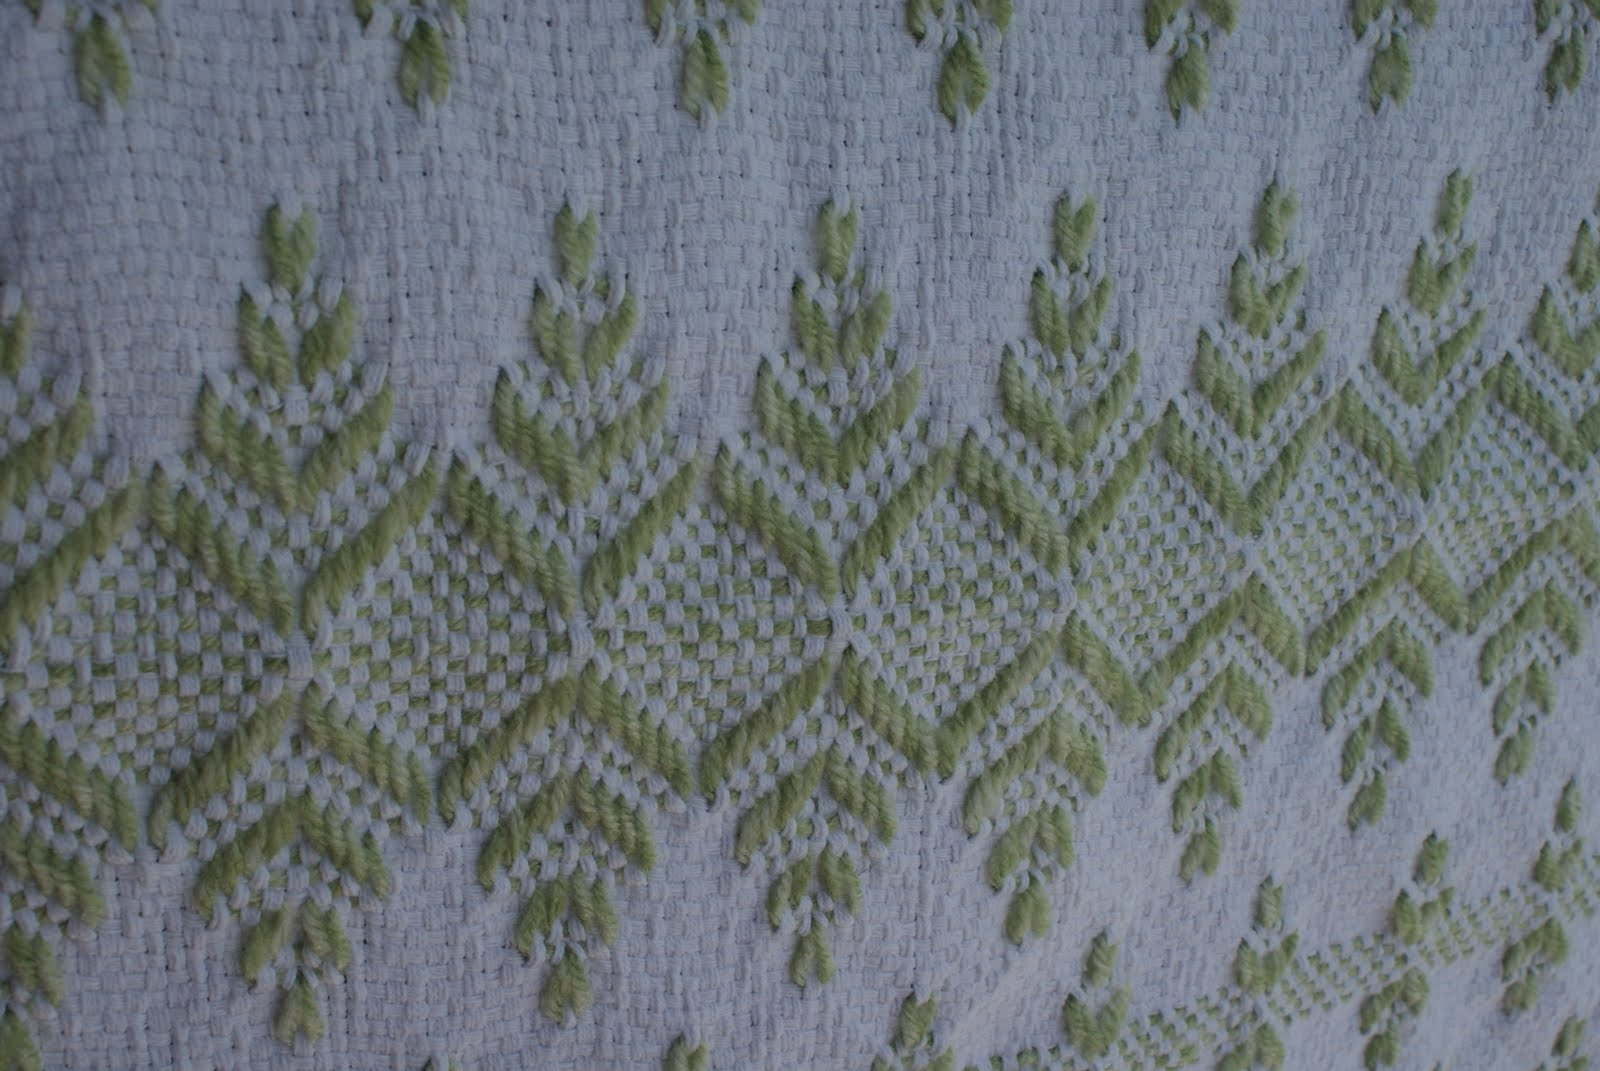 Huck Embroidery Patterns Free I Hold All The Cards An Introduction To Sweedish Weave